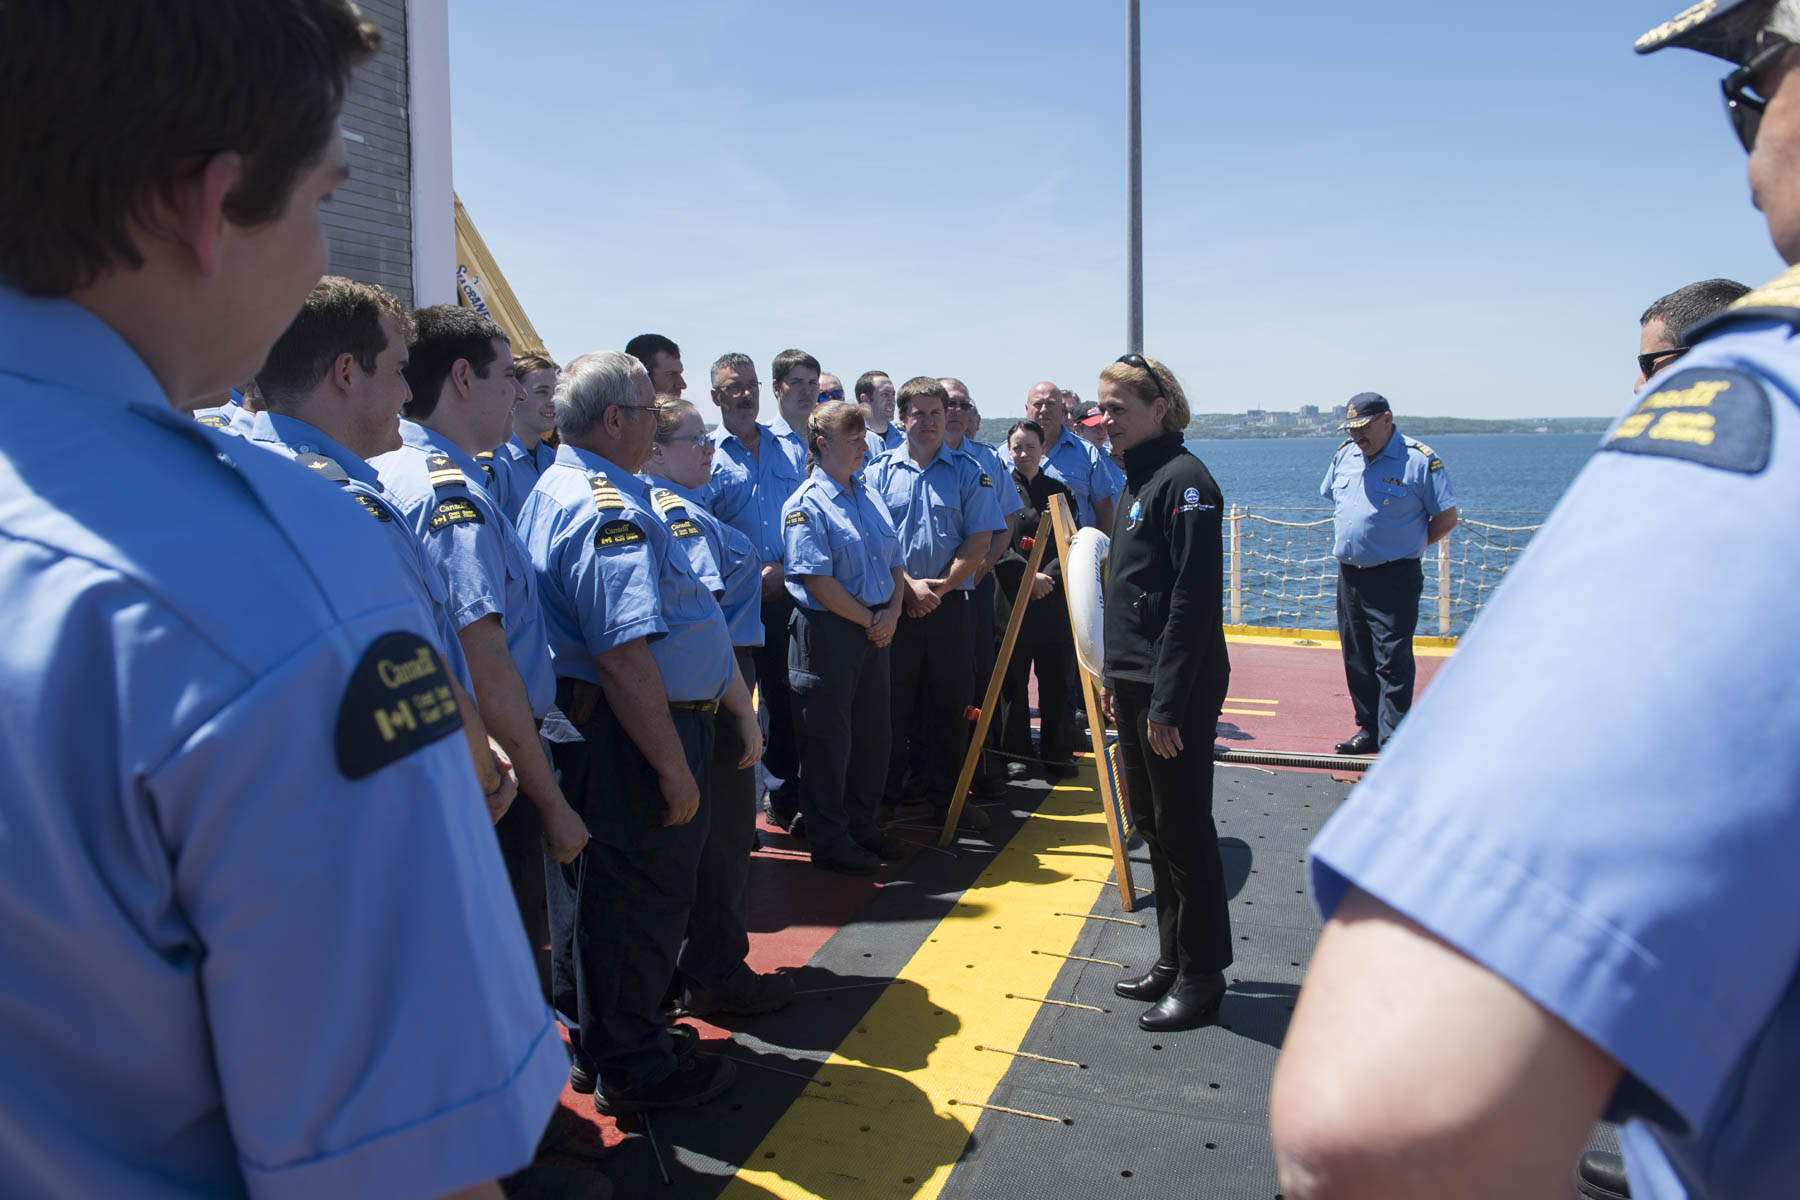 On board, Her Excellency toured the vessel and learned about search and rescue operations.